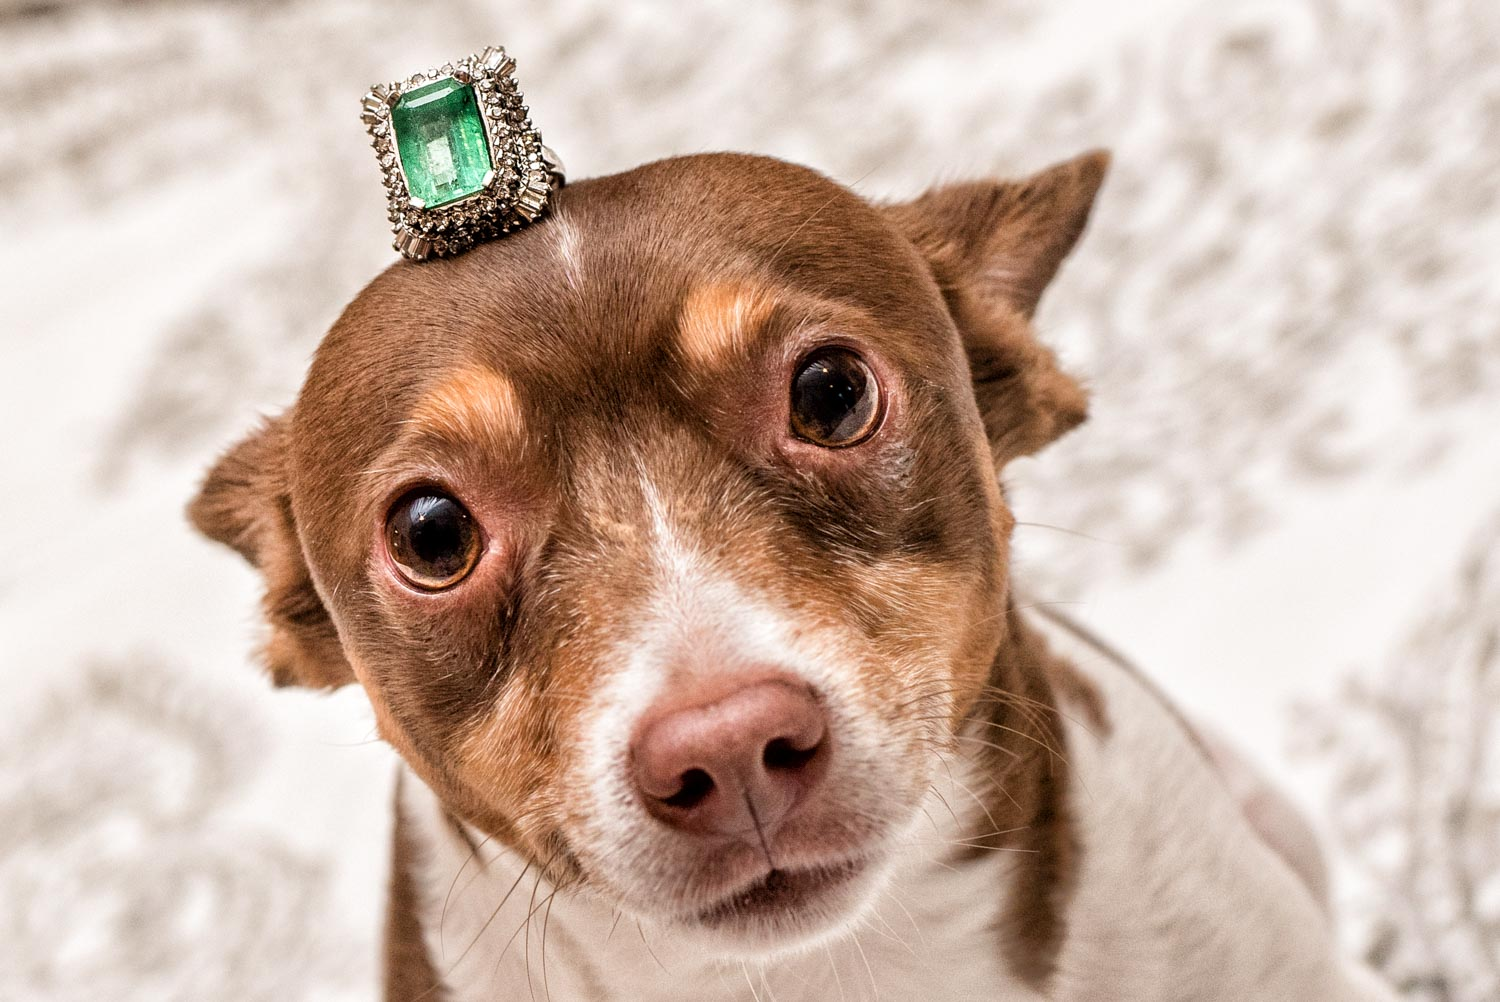 The Brides large emerald wedding ring sitting on top of a dogs head. The ring is so big it could almost be a little hat for the dog.